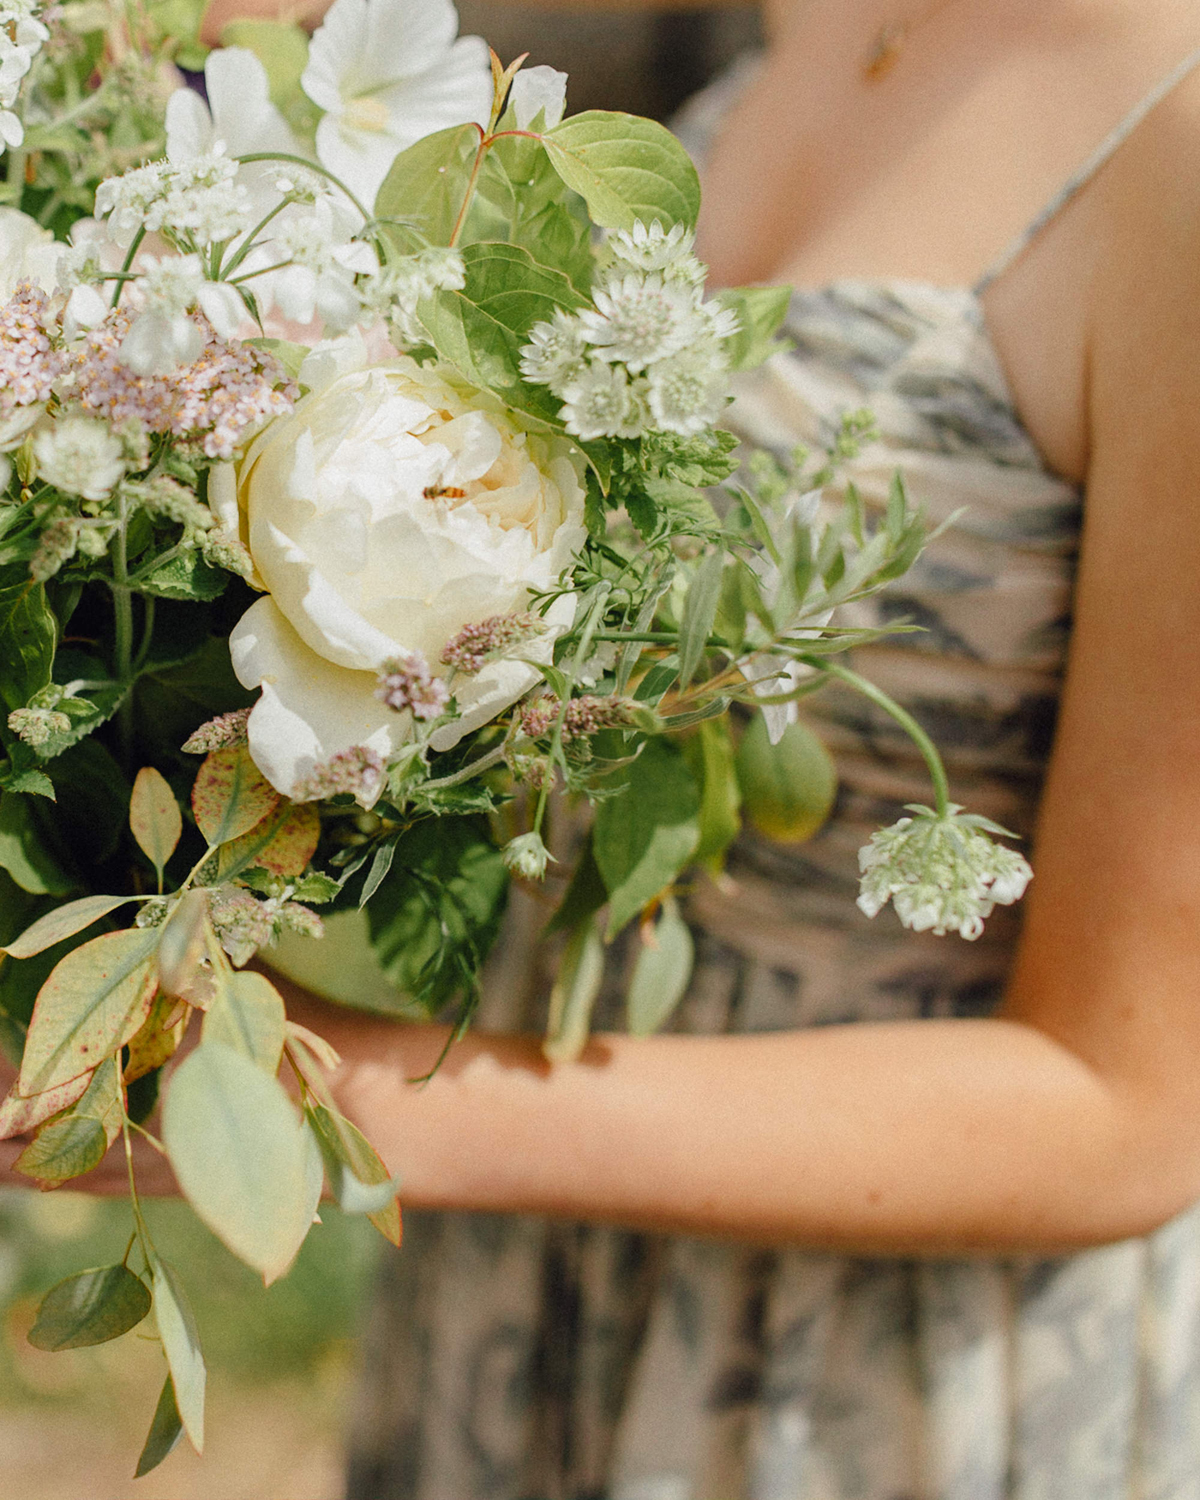 Wedding Flowers Suffolk: A Phase Eight Gown And Flowers In Her Hair For A Botanical